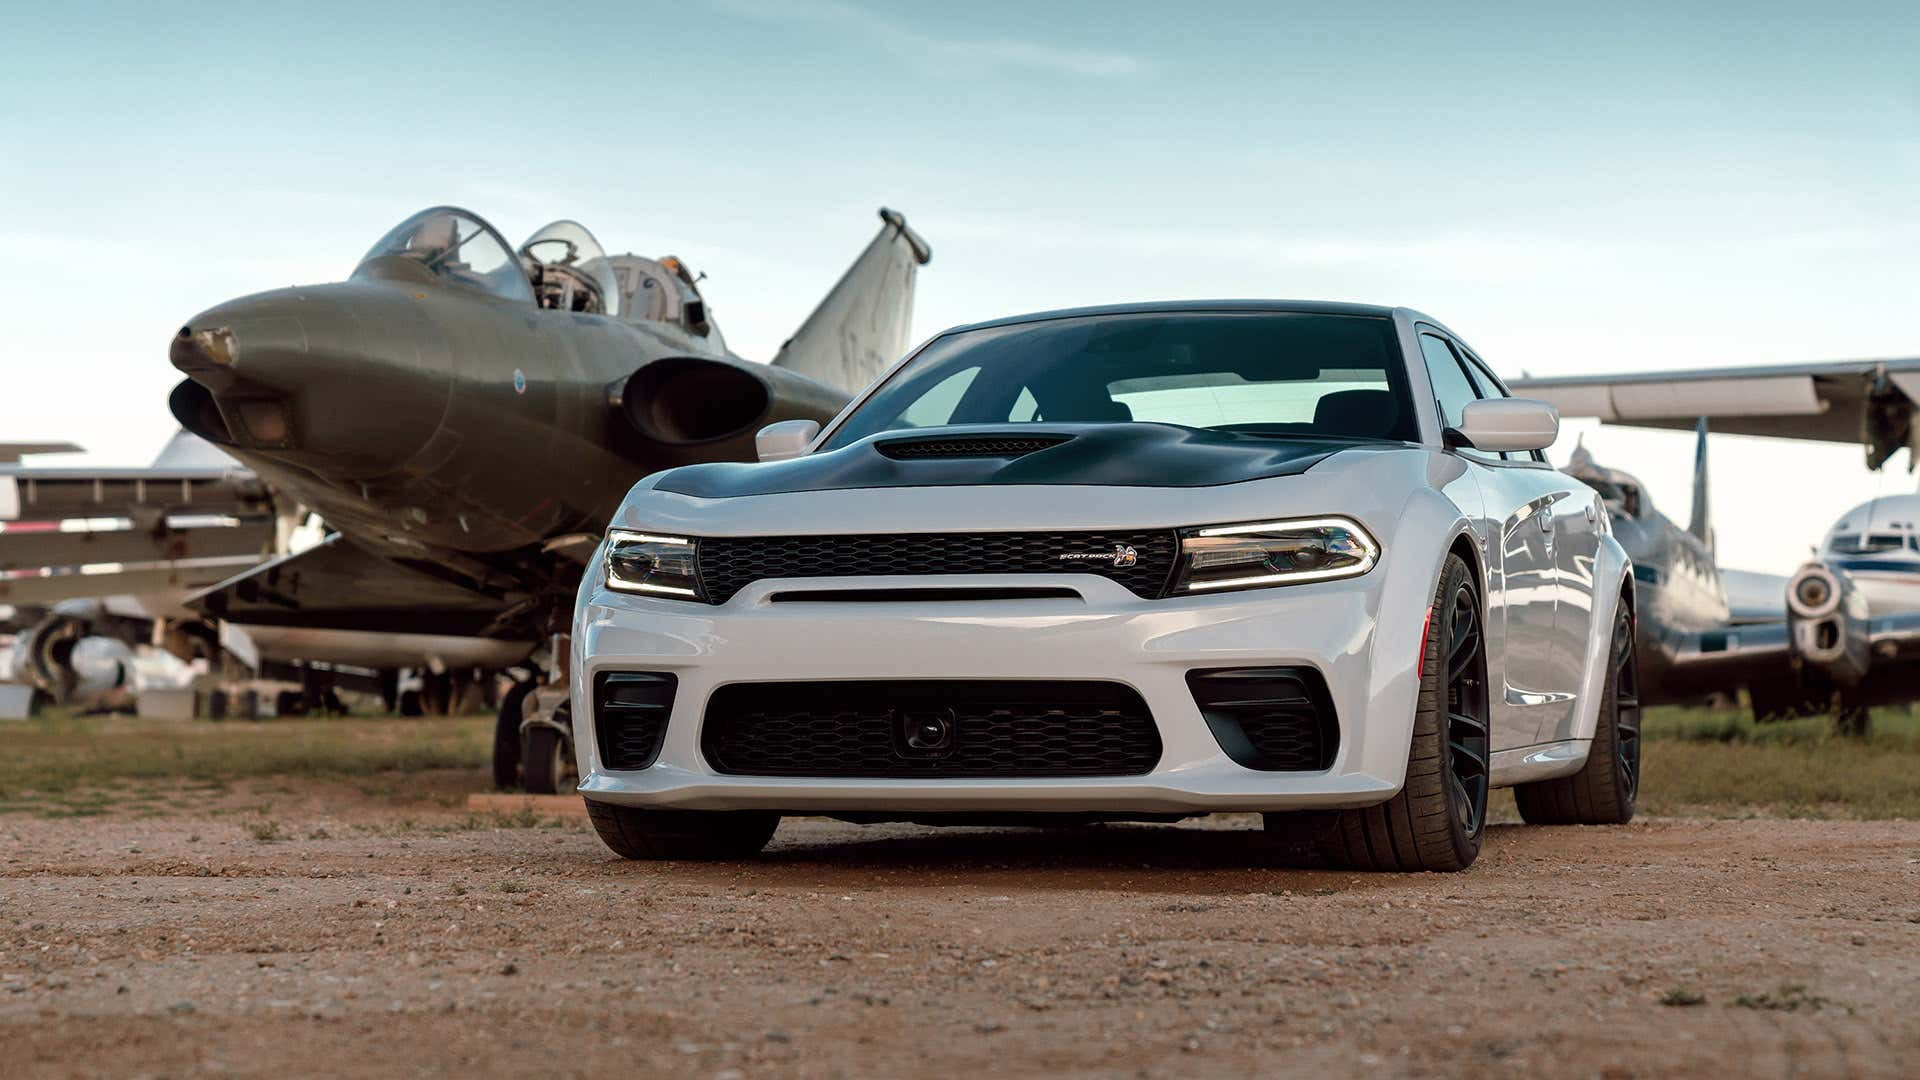 A white 2021 Dodge Charger Widebody Scat Pack rests next to a jet fighter.